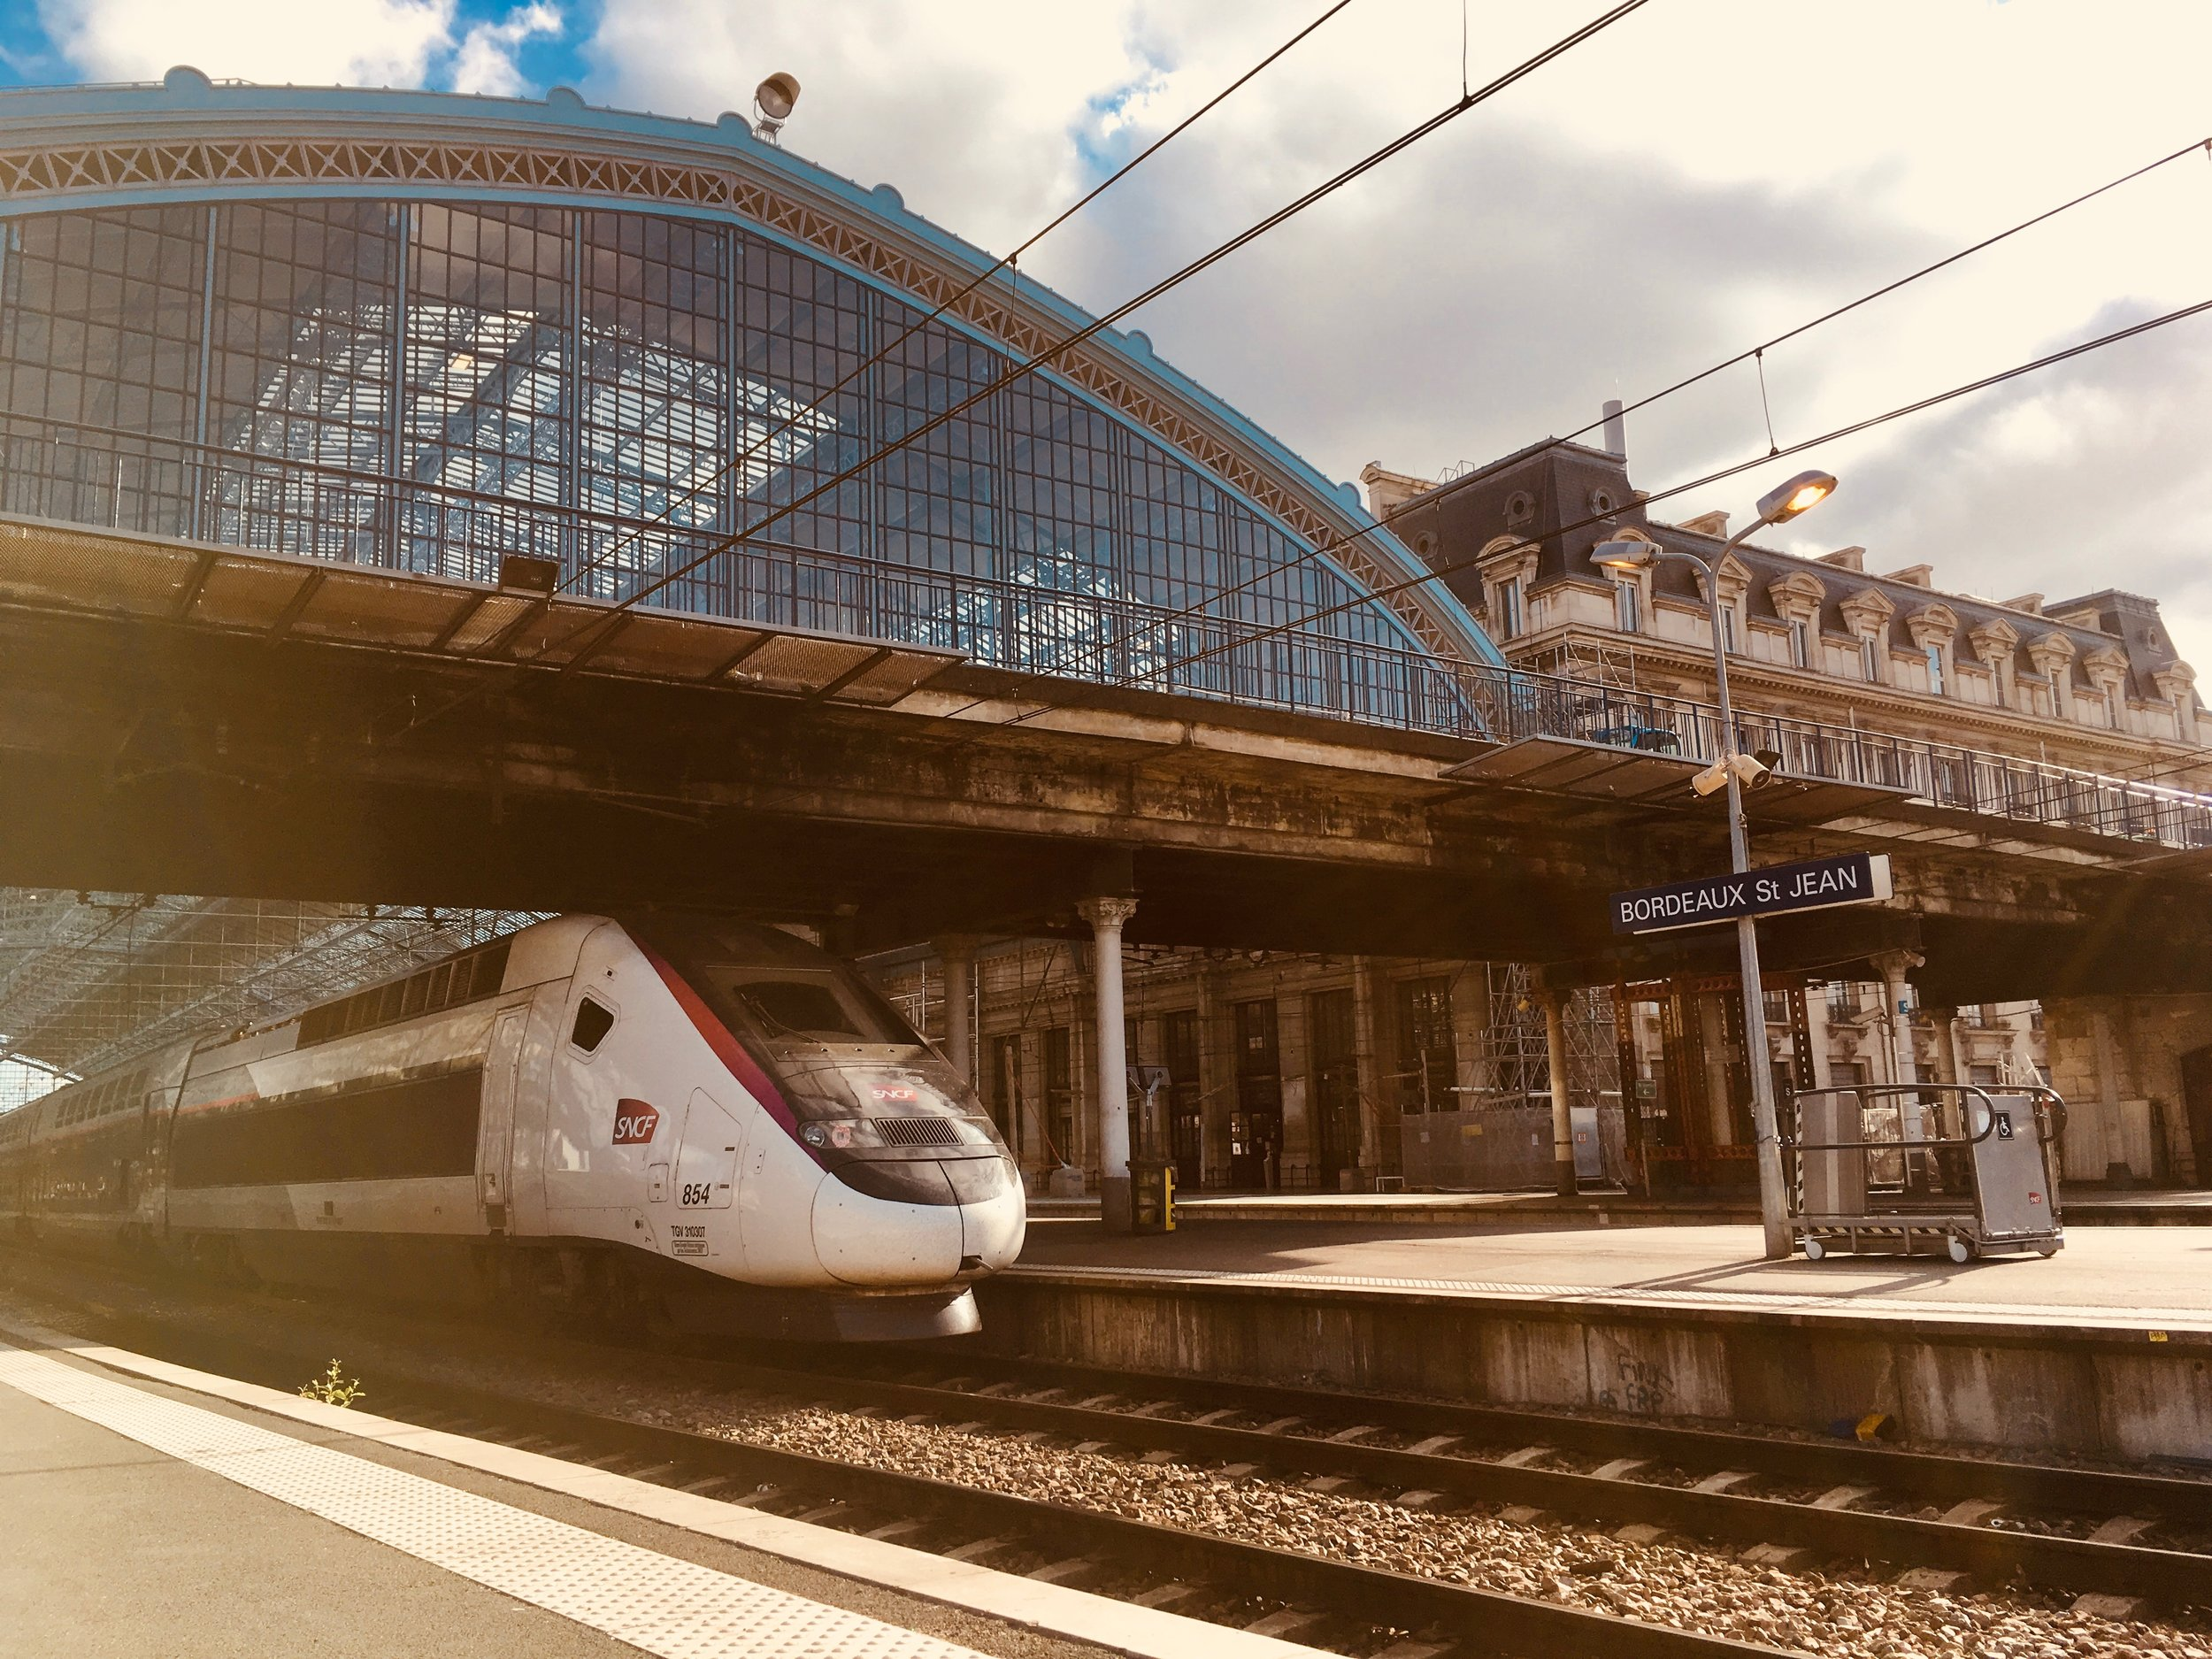 bordeaux gare saint jean 2 sanctuary surf holiday.jpg